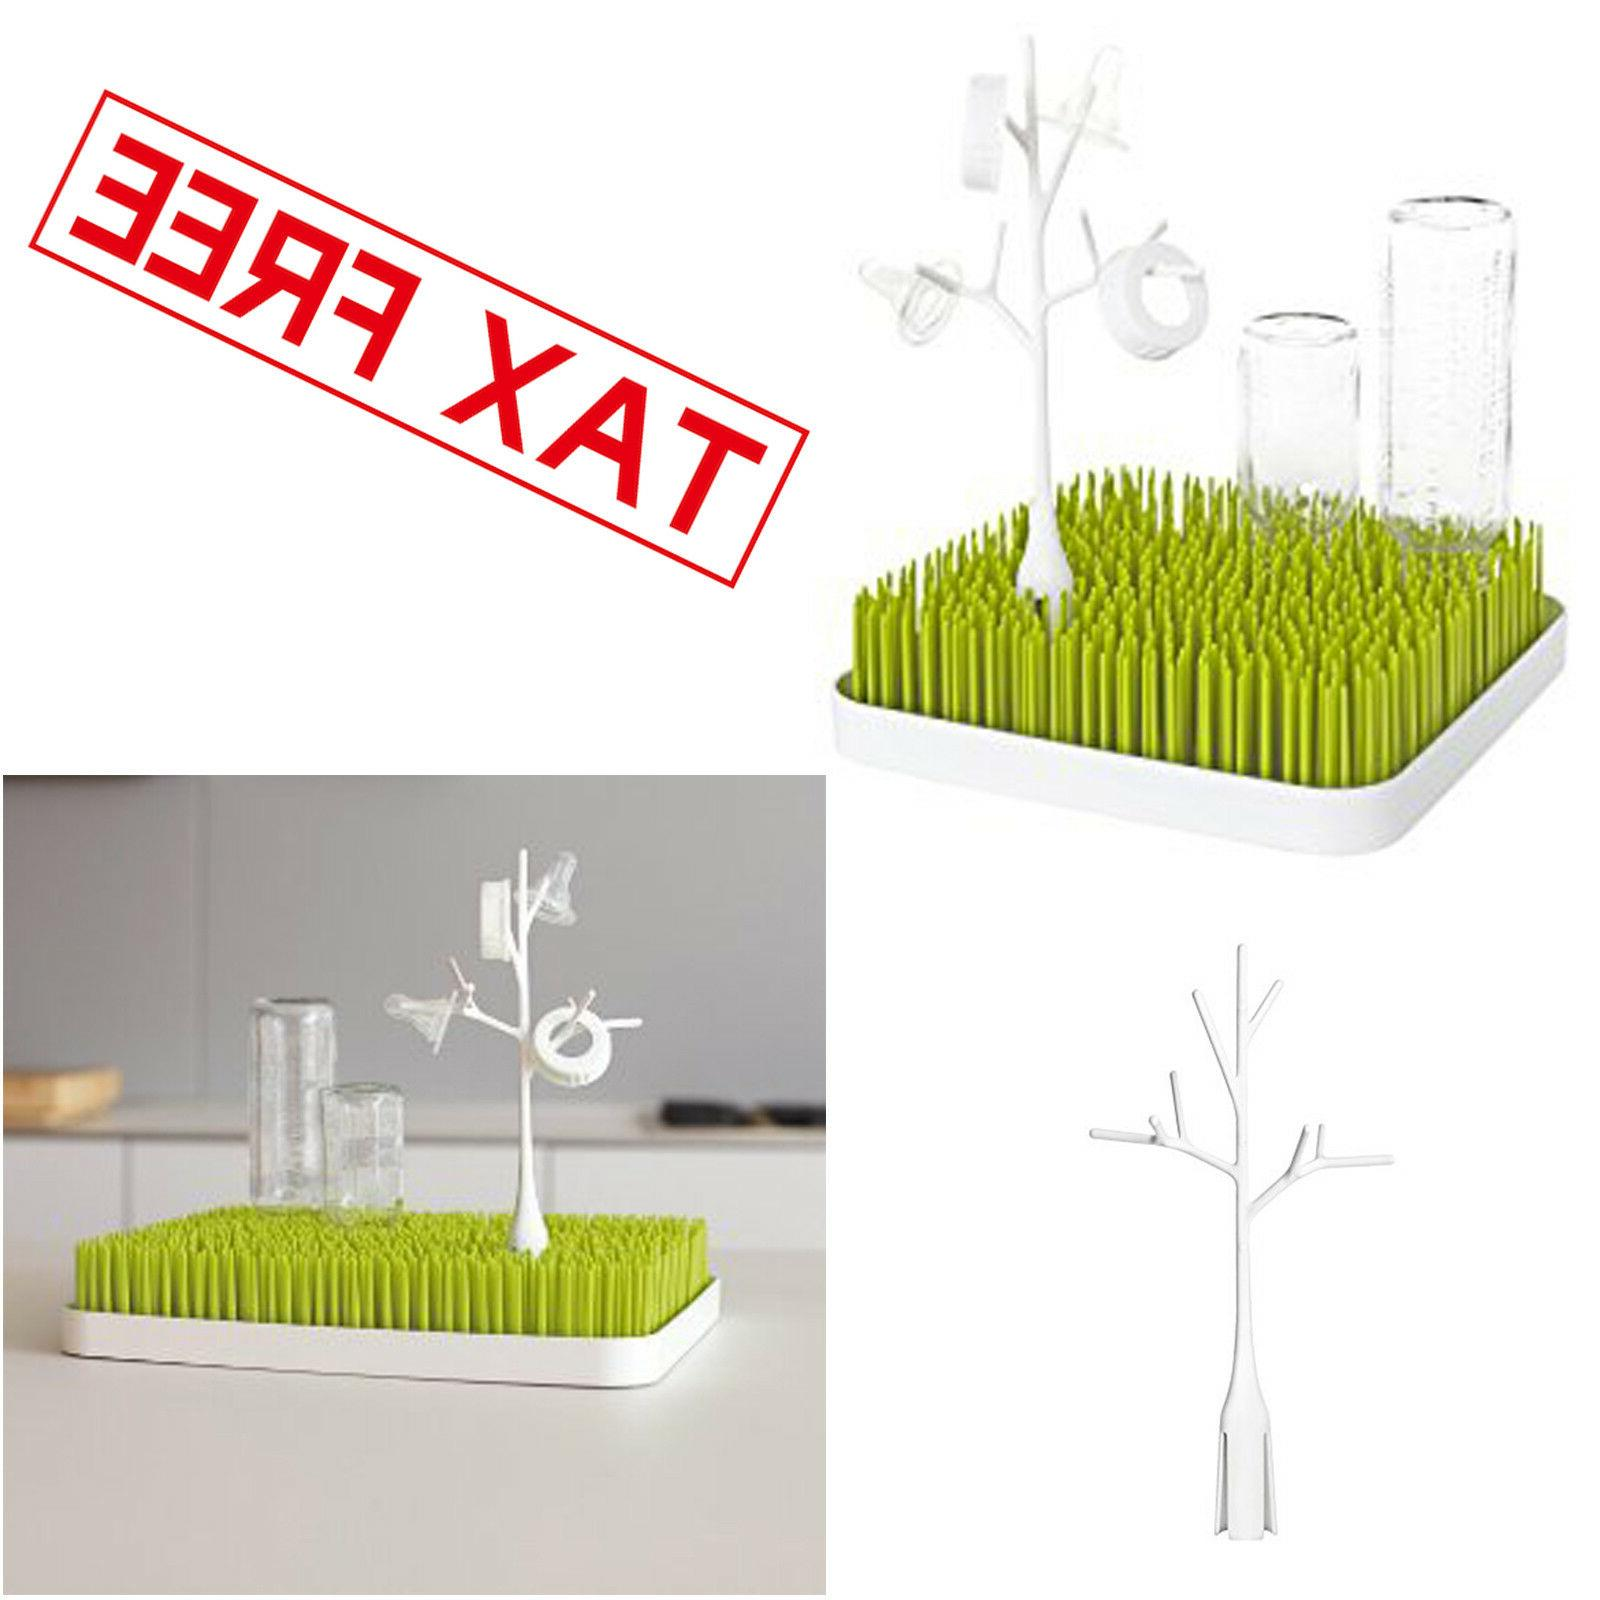 drying rack accessory twig grass lawn white